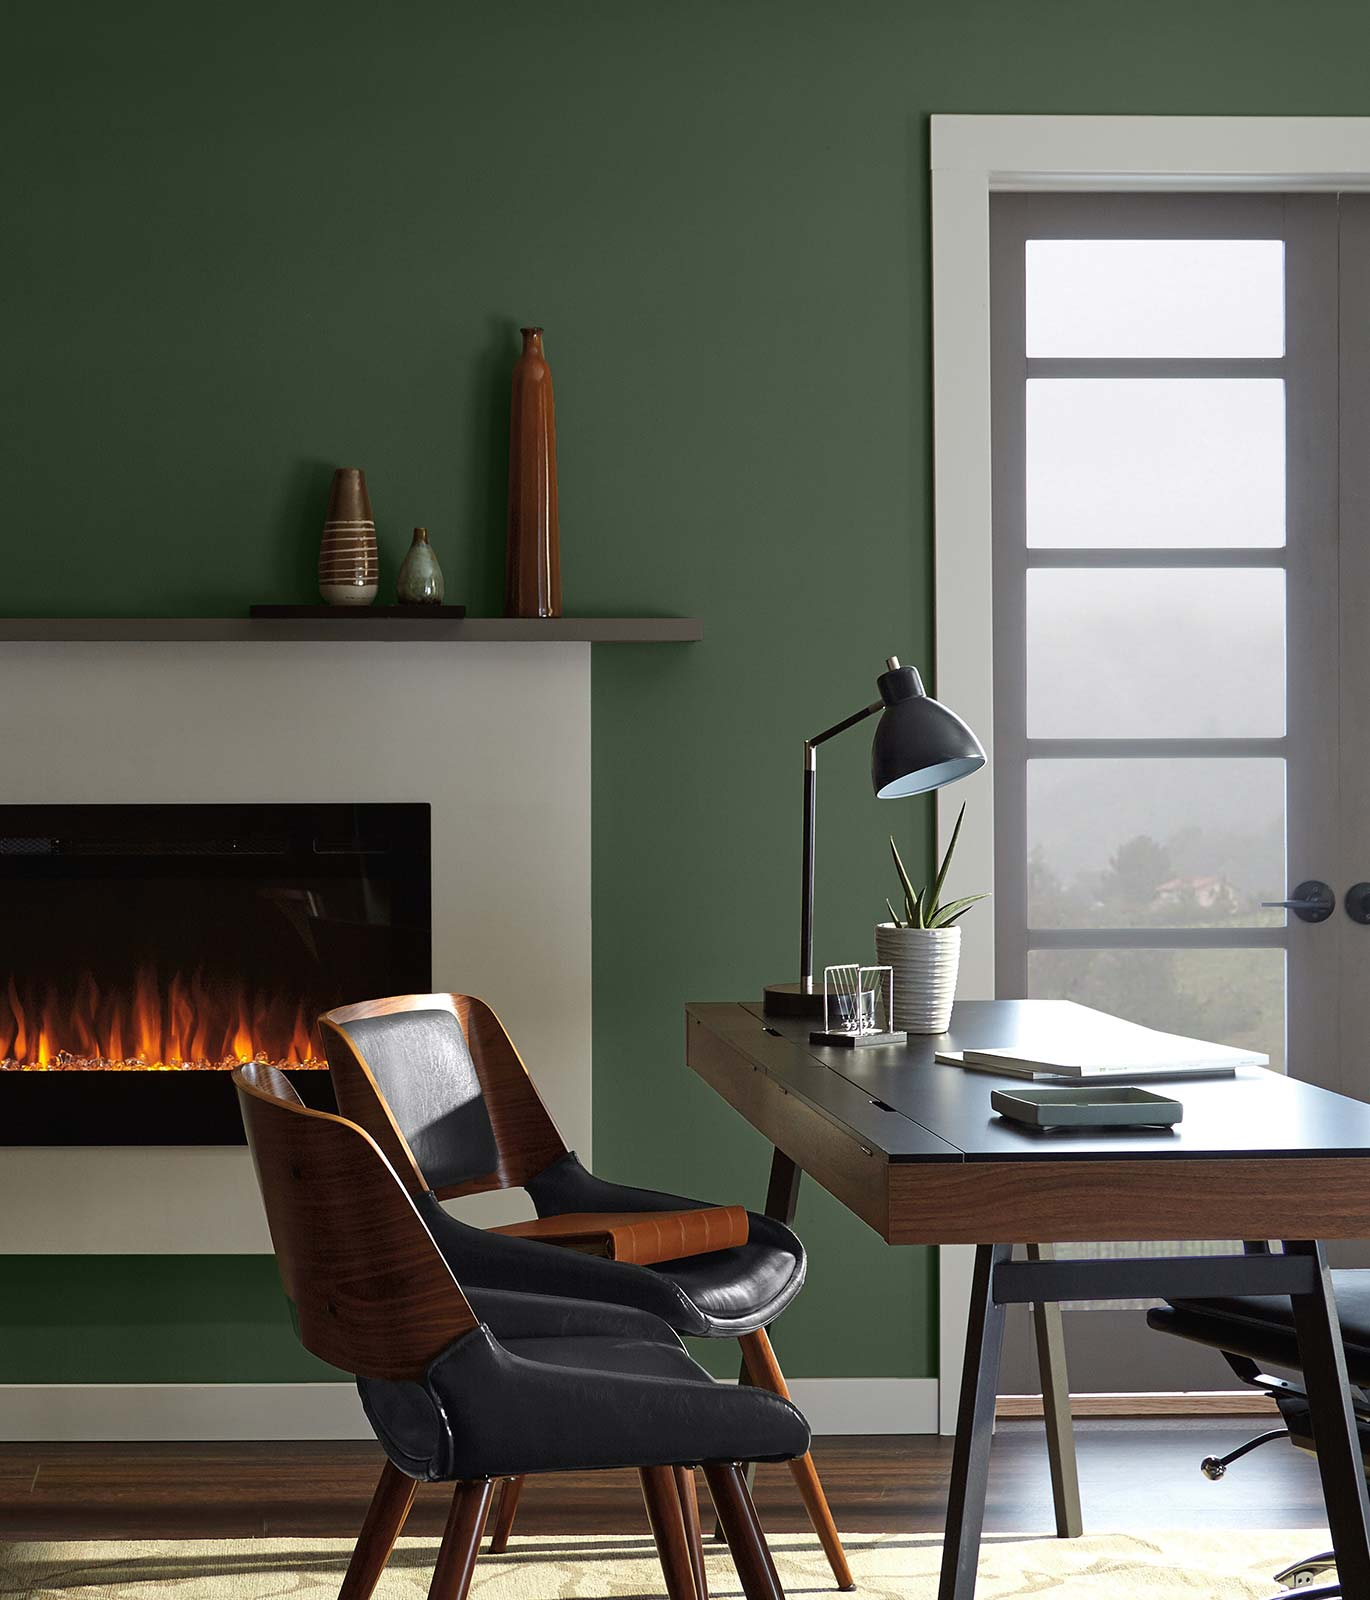 An office desk with a dark brown desk placed in front of a lit fireplace. Walls in the room are painted green. The mood is quiet and focused.